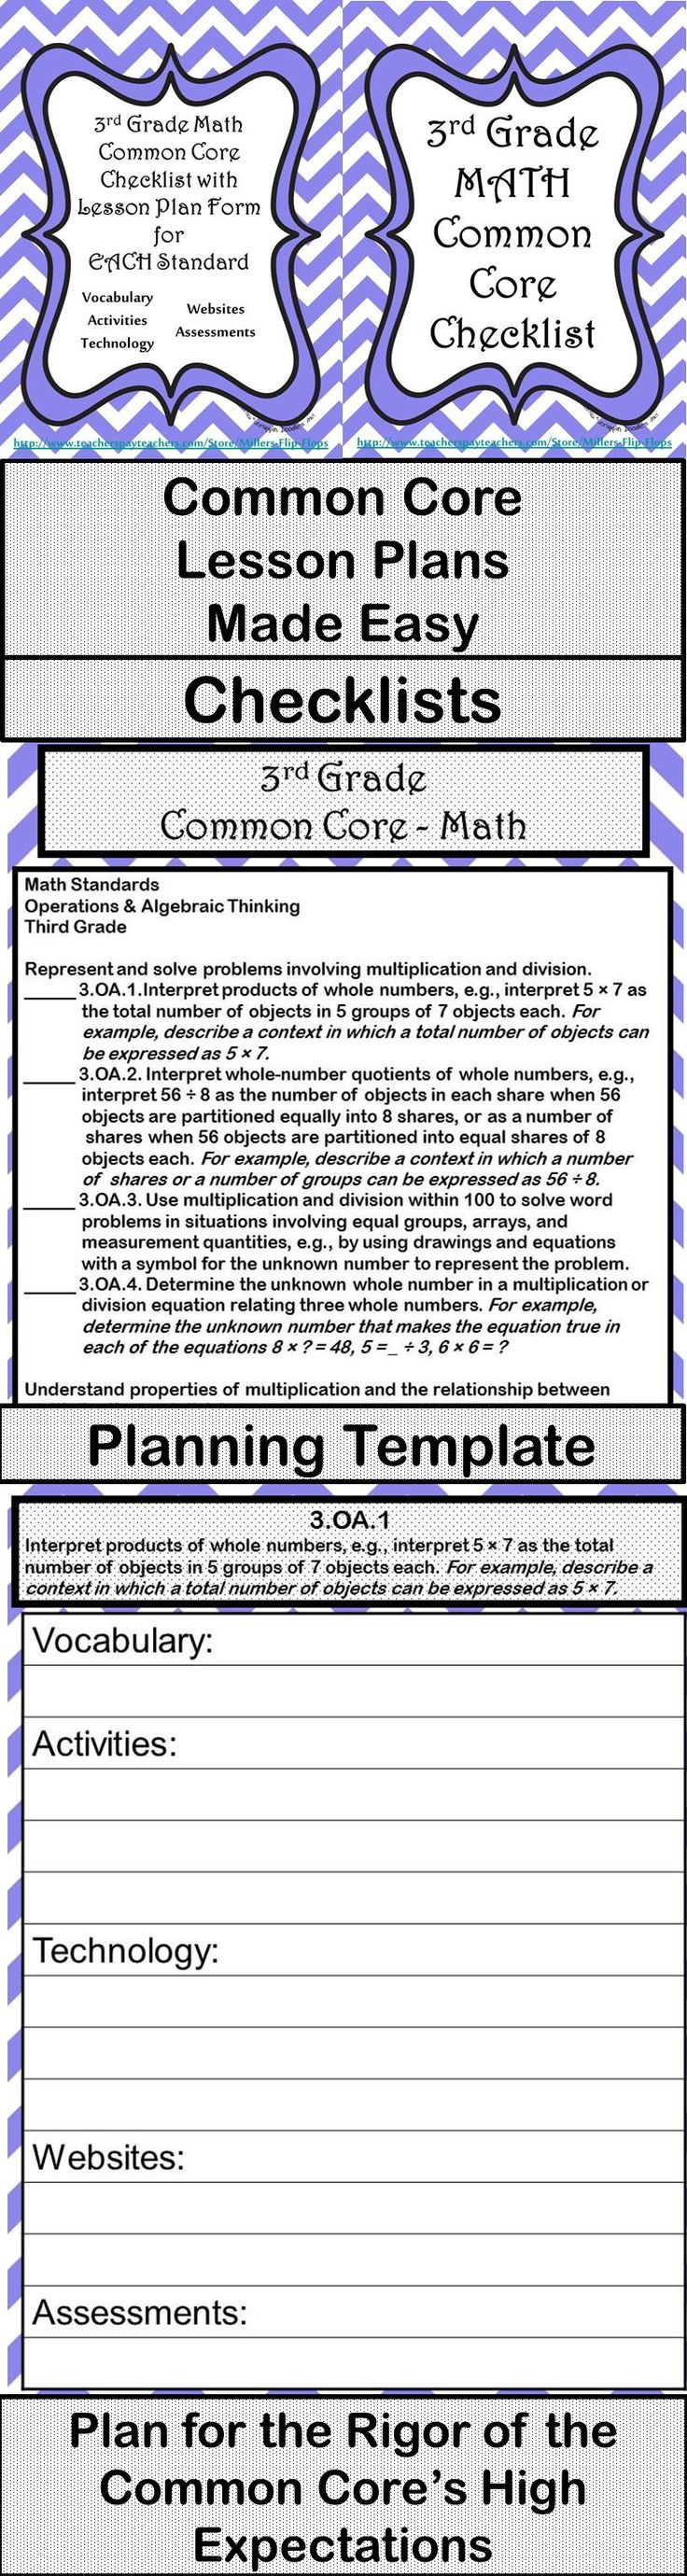 Best Lesson Plans Images On Pinterest Teaching Ideas - Lesson plan template using common core standards